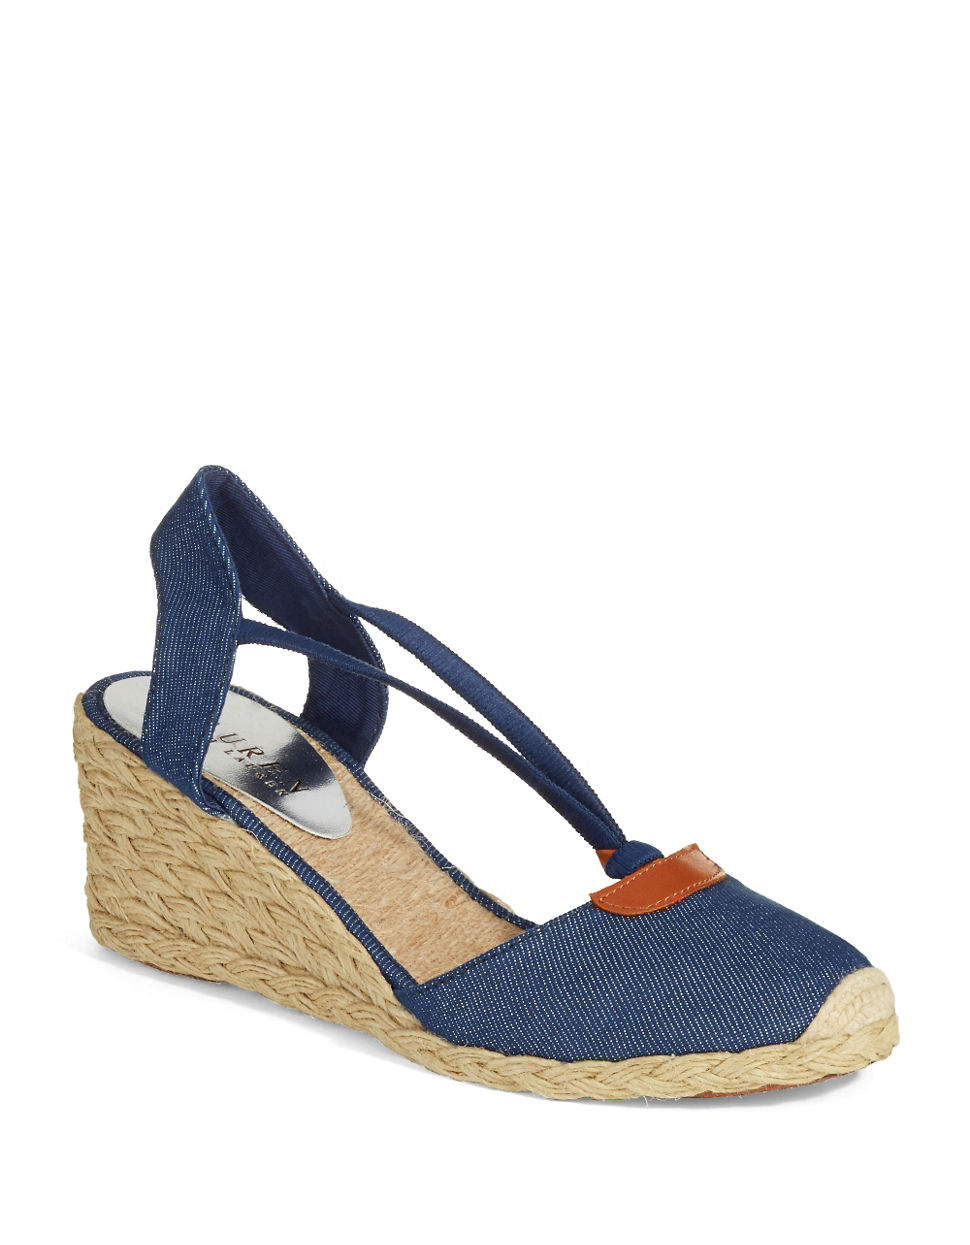 lyst lauren by ralph lauren cala espadrille wedges in blue. Black Bedroom Furniture Sets. Home Design Ideas